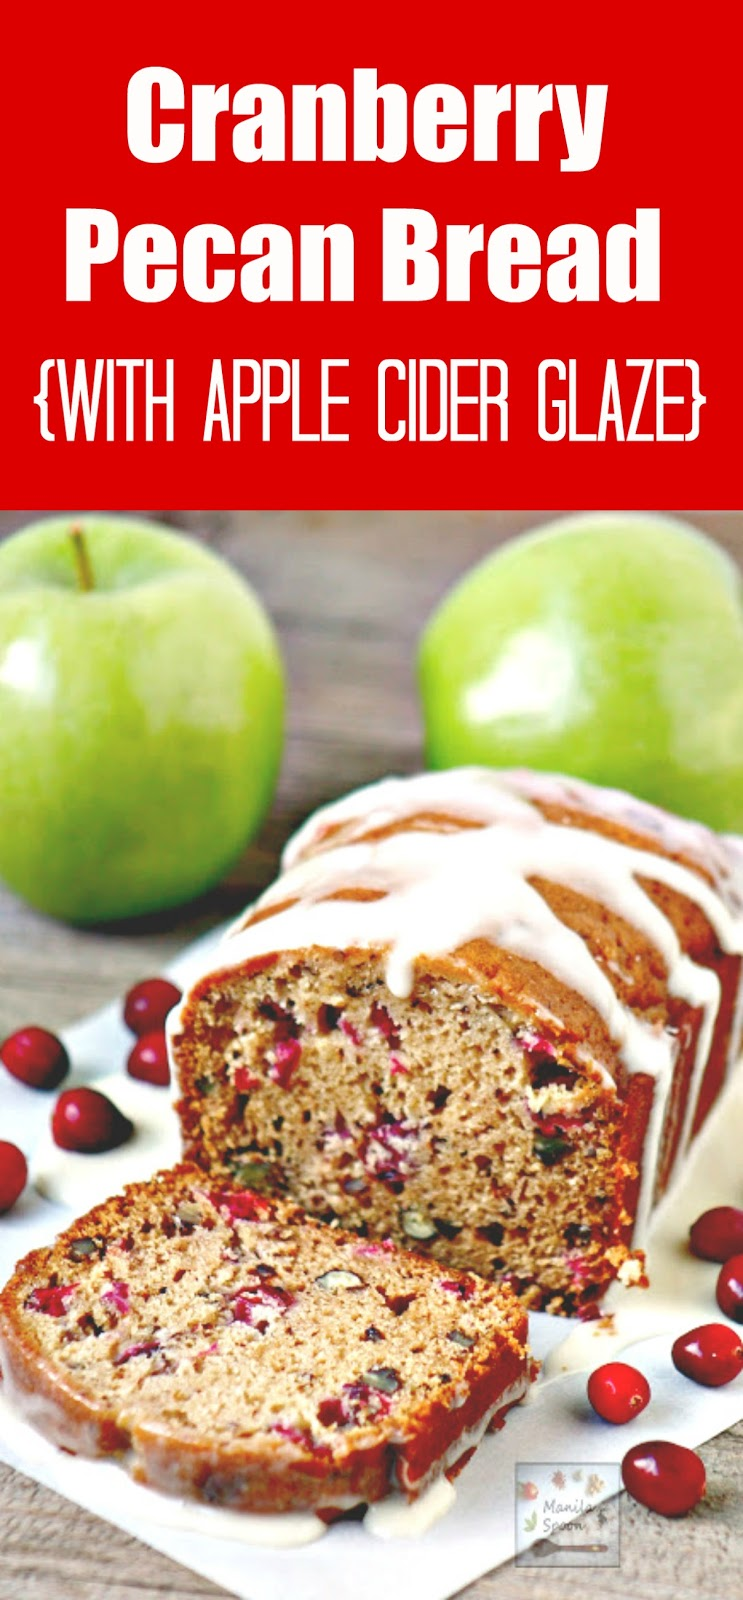 Flavored with Apple Cider, this moist and delicious nutty and sweet-tangy Cranberry Pecan Bread is the perfect snack for the family for Thanksgiving, Christmas or New Year! | manilaspoon.com